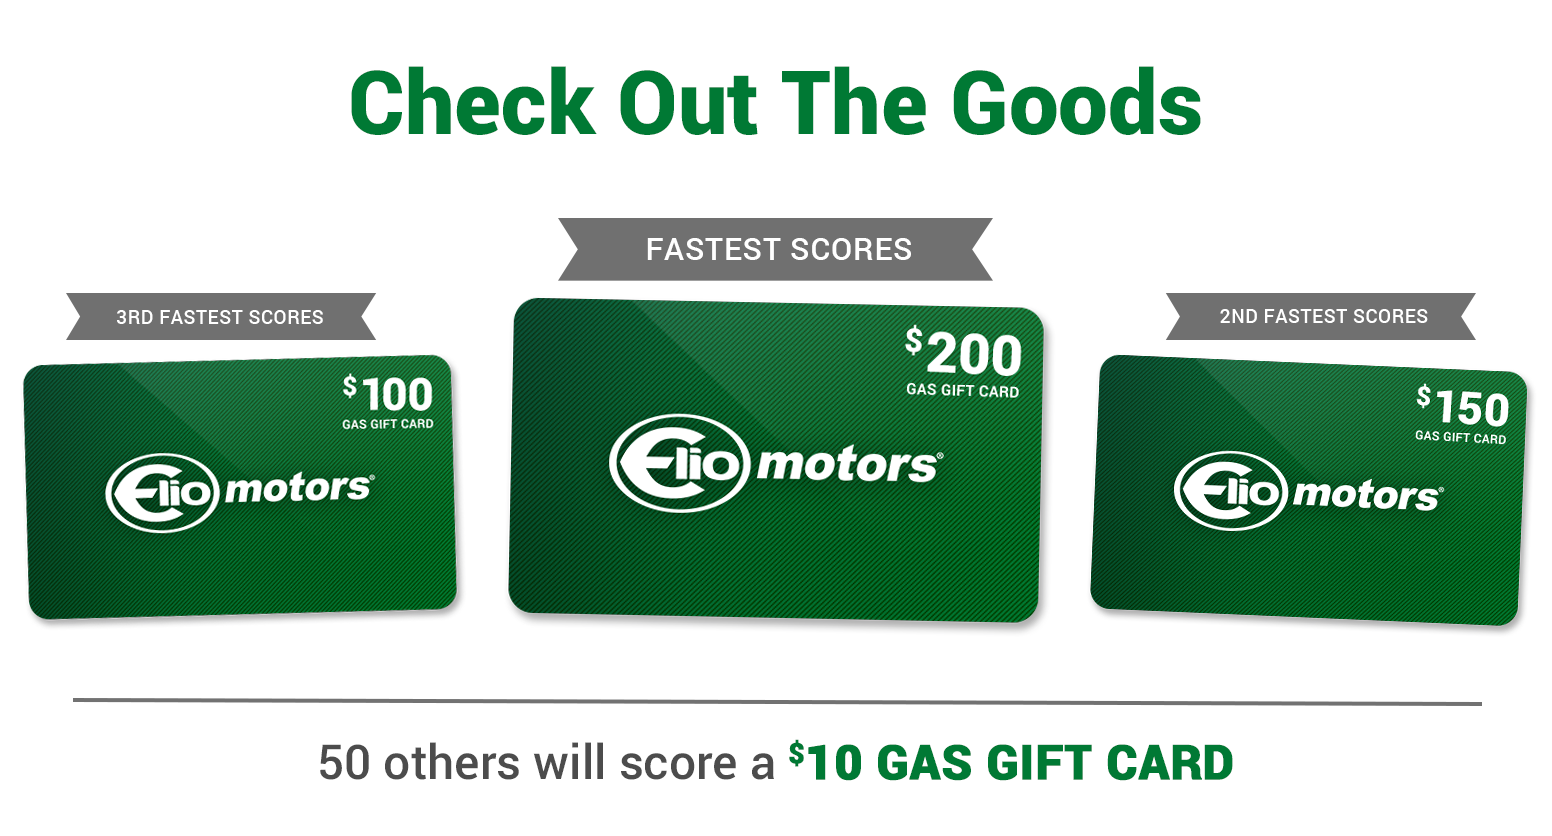 Fastest person scores $200 Gas Gift Card, next fastest scores a $150 Gas Gift Card, third fastest scores a $100 Gas Gift Card